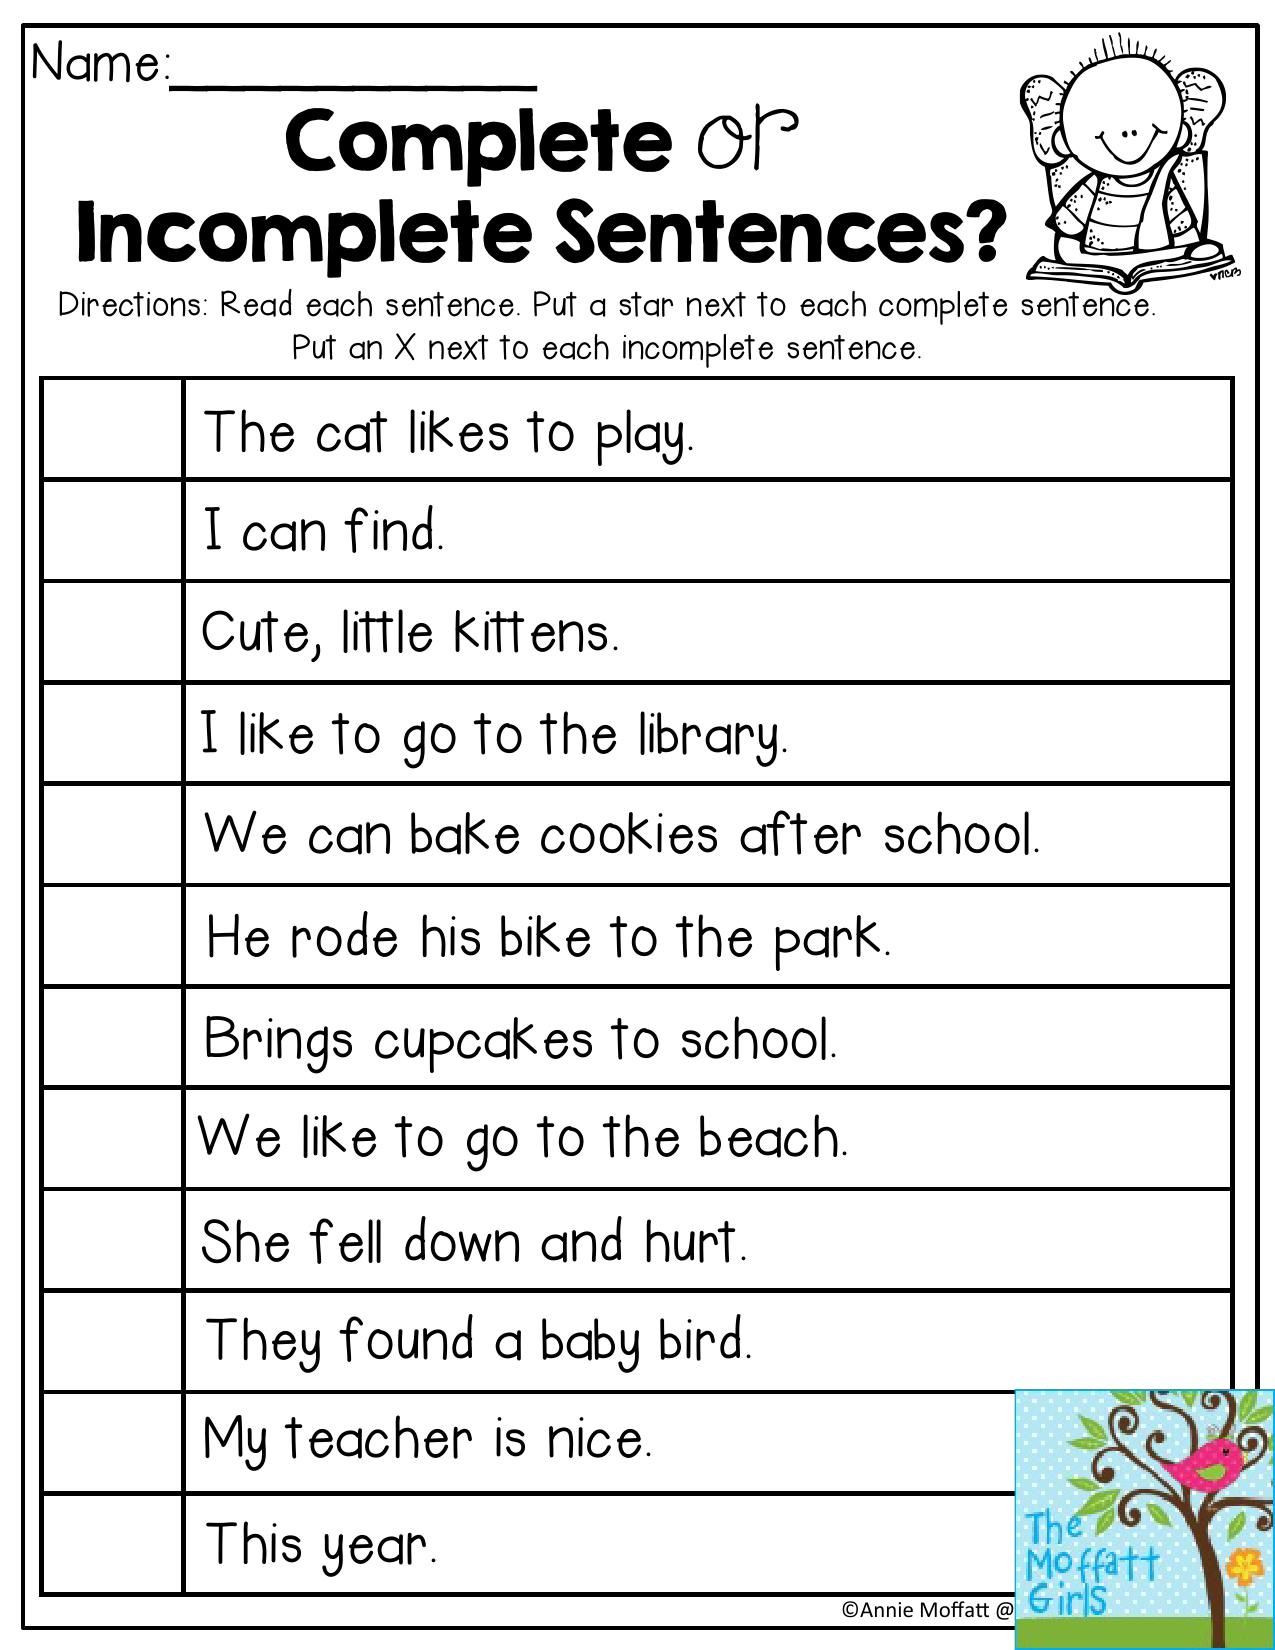 Writing In Complete Sentences Worksheet Plete or In Plete Sentences Read Each Sentence and